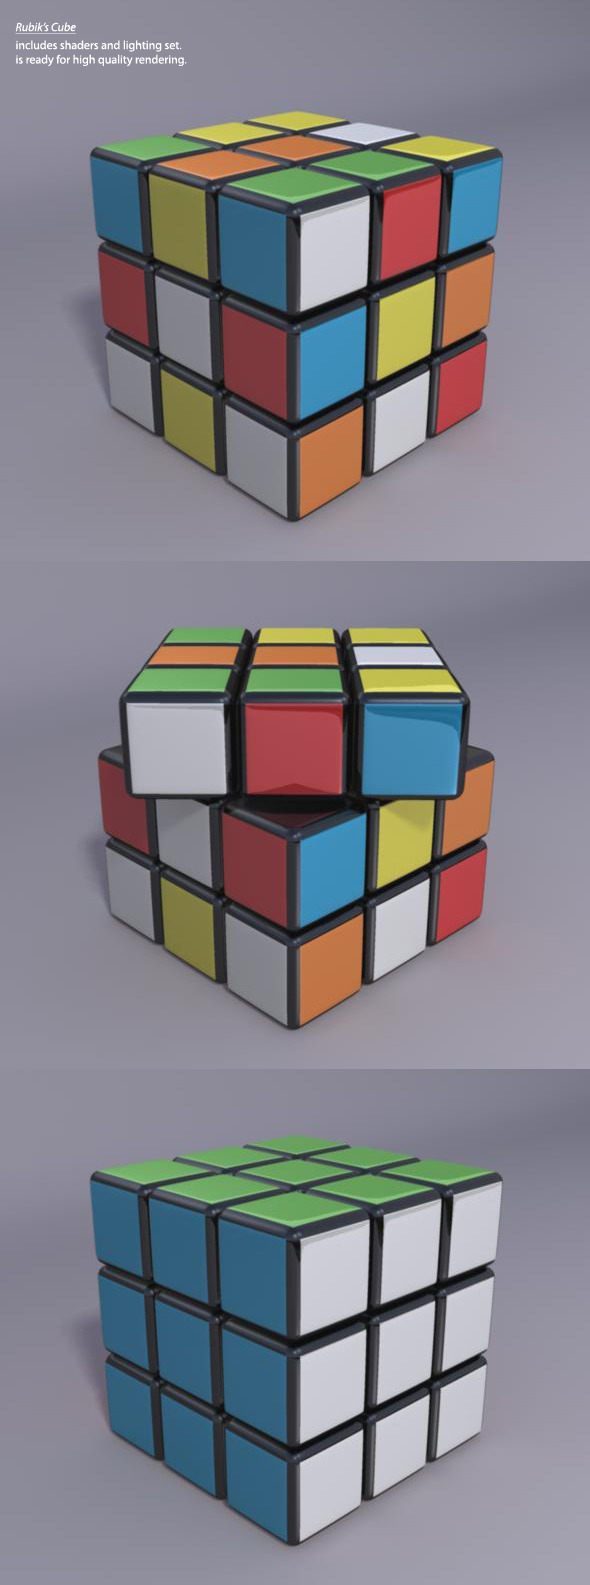 3D High quality Rubik's Cube - 3DOcean Item for Sale